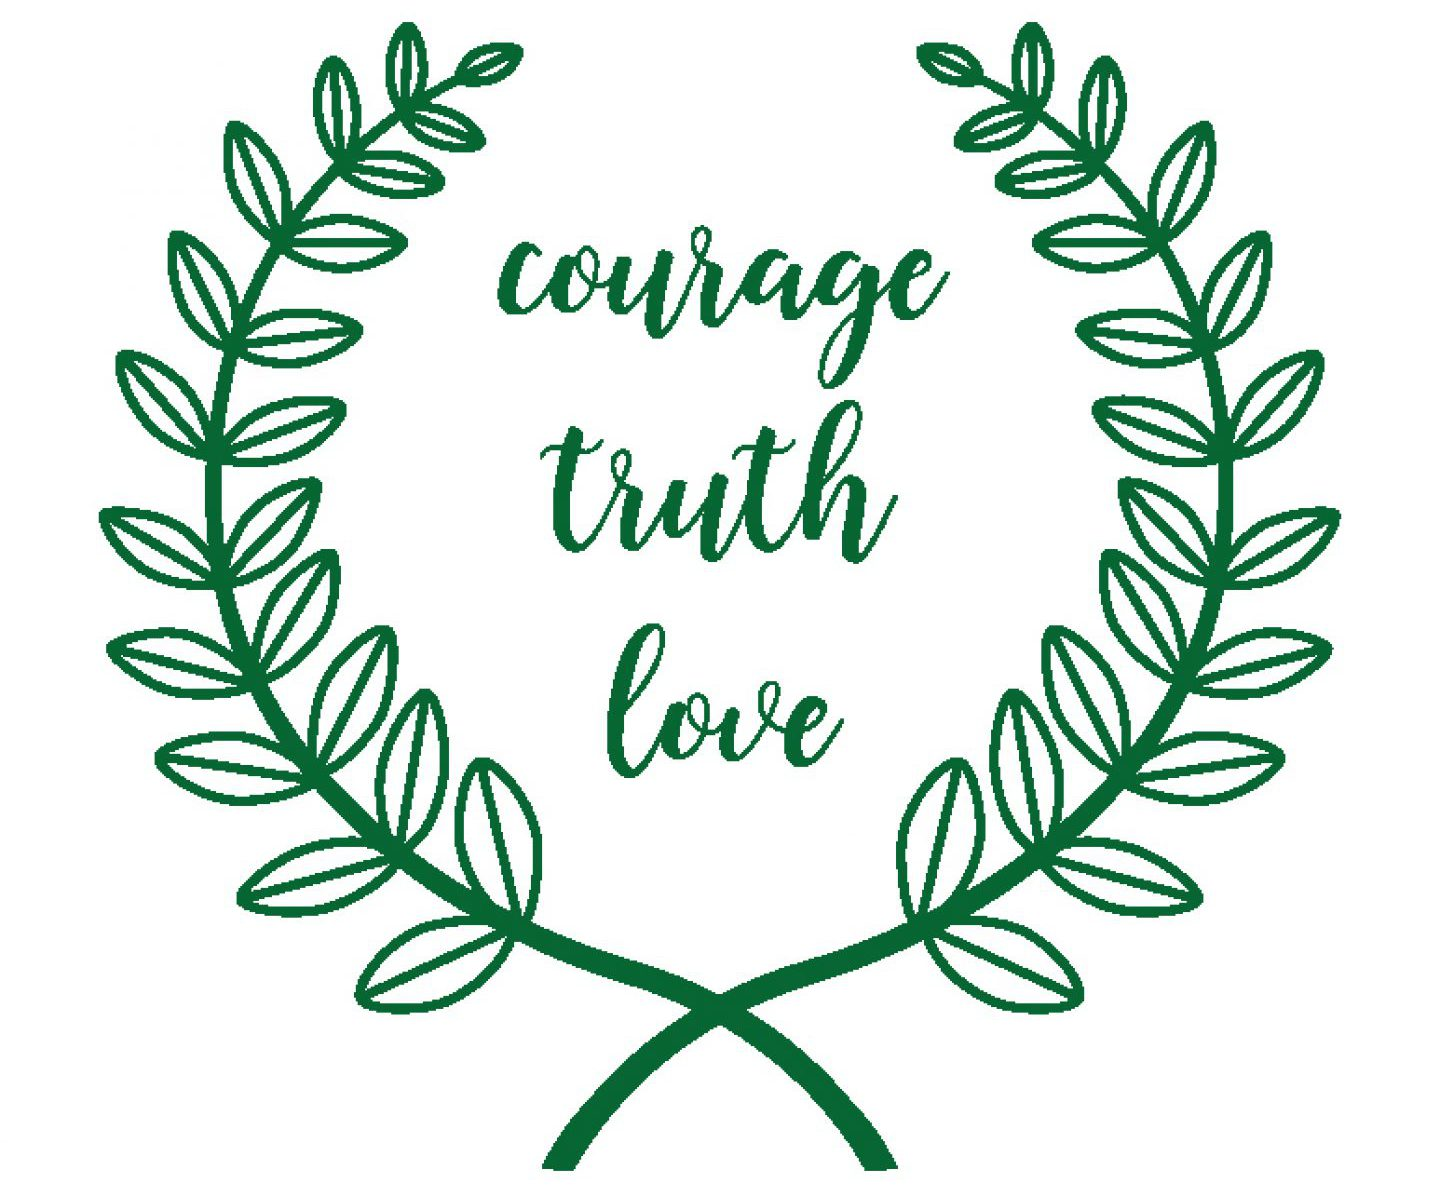 Courage Truth Love